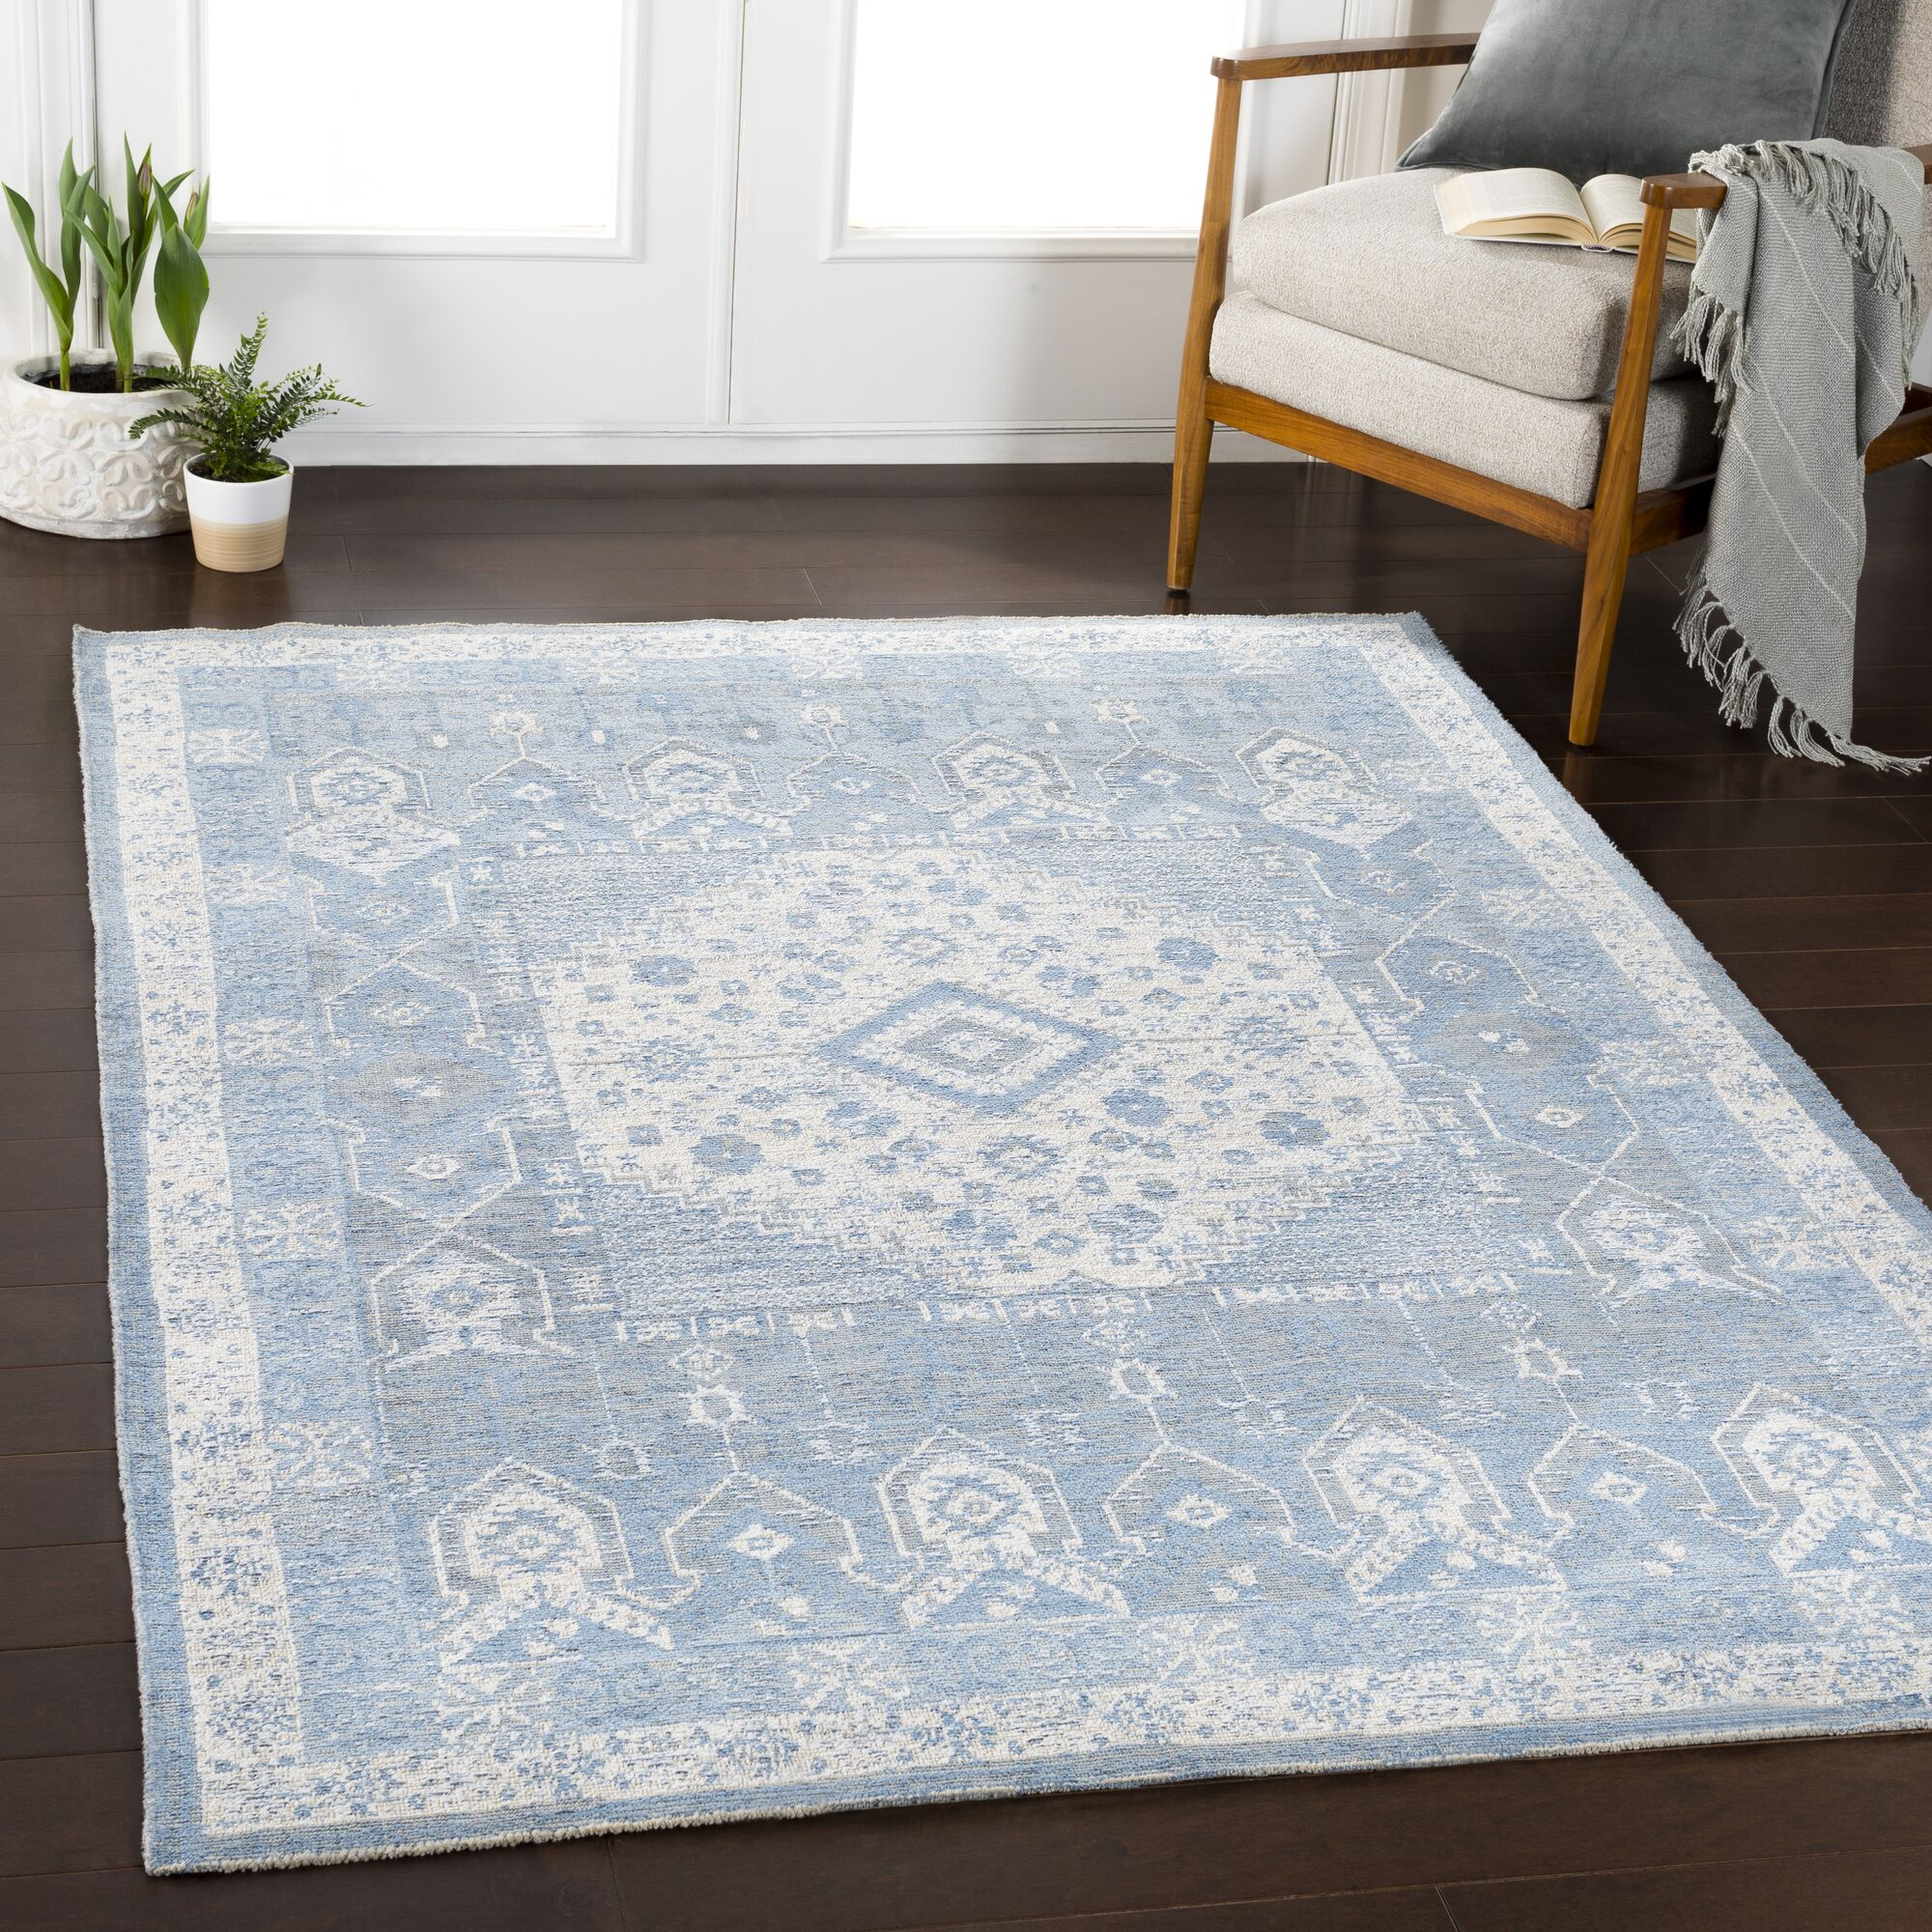 Tybalt Traditional Sky Blue Area Rug Rug Size: Runner 2'7